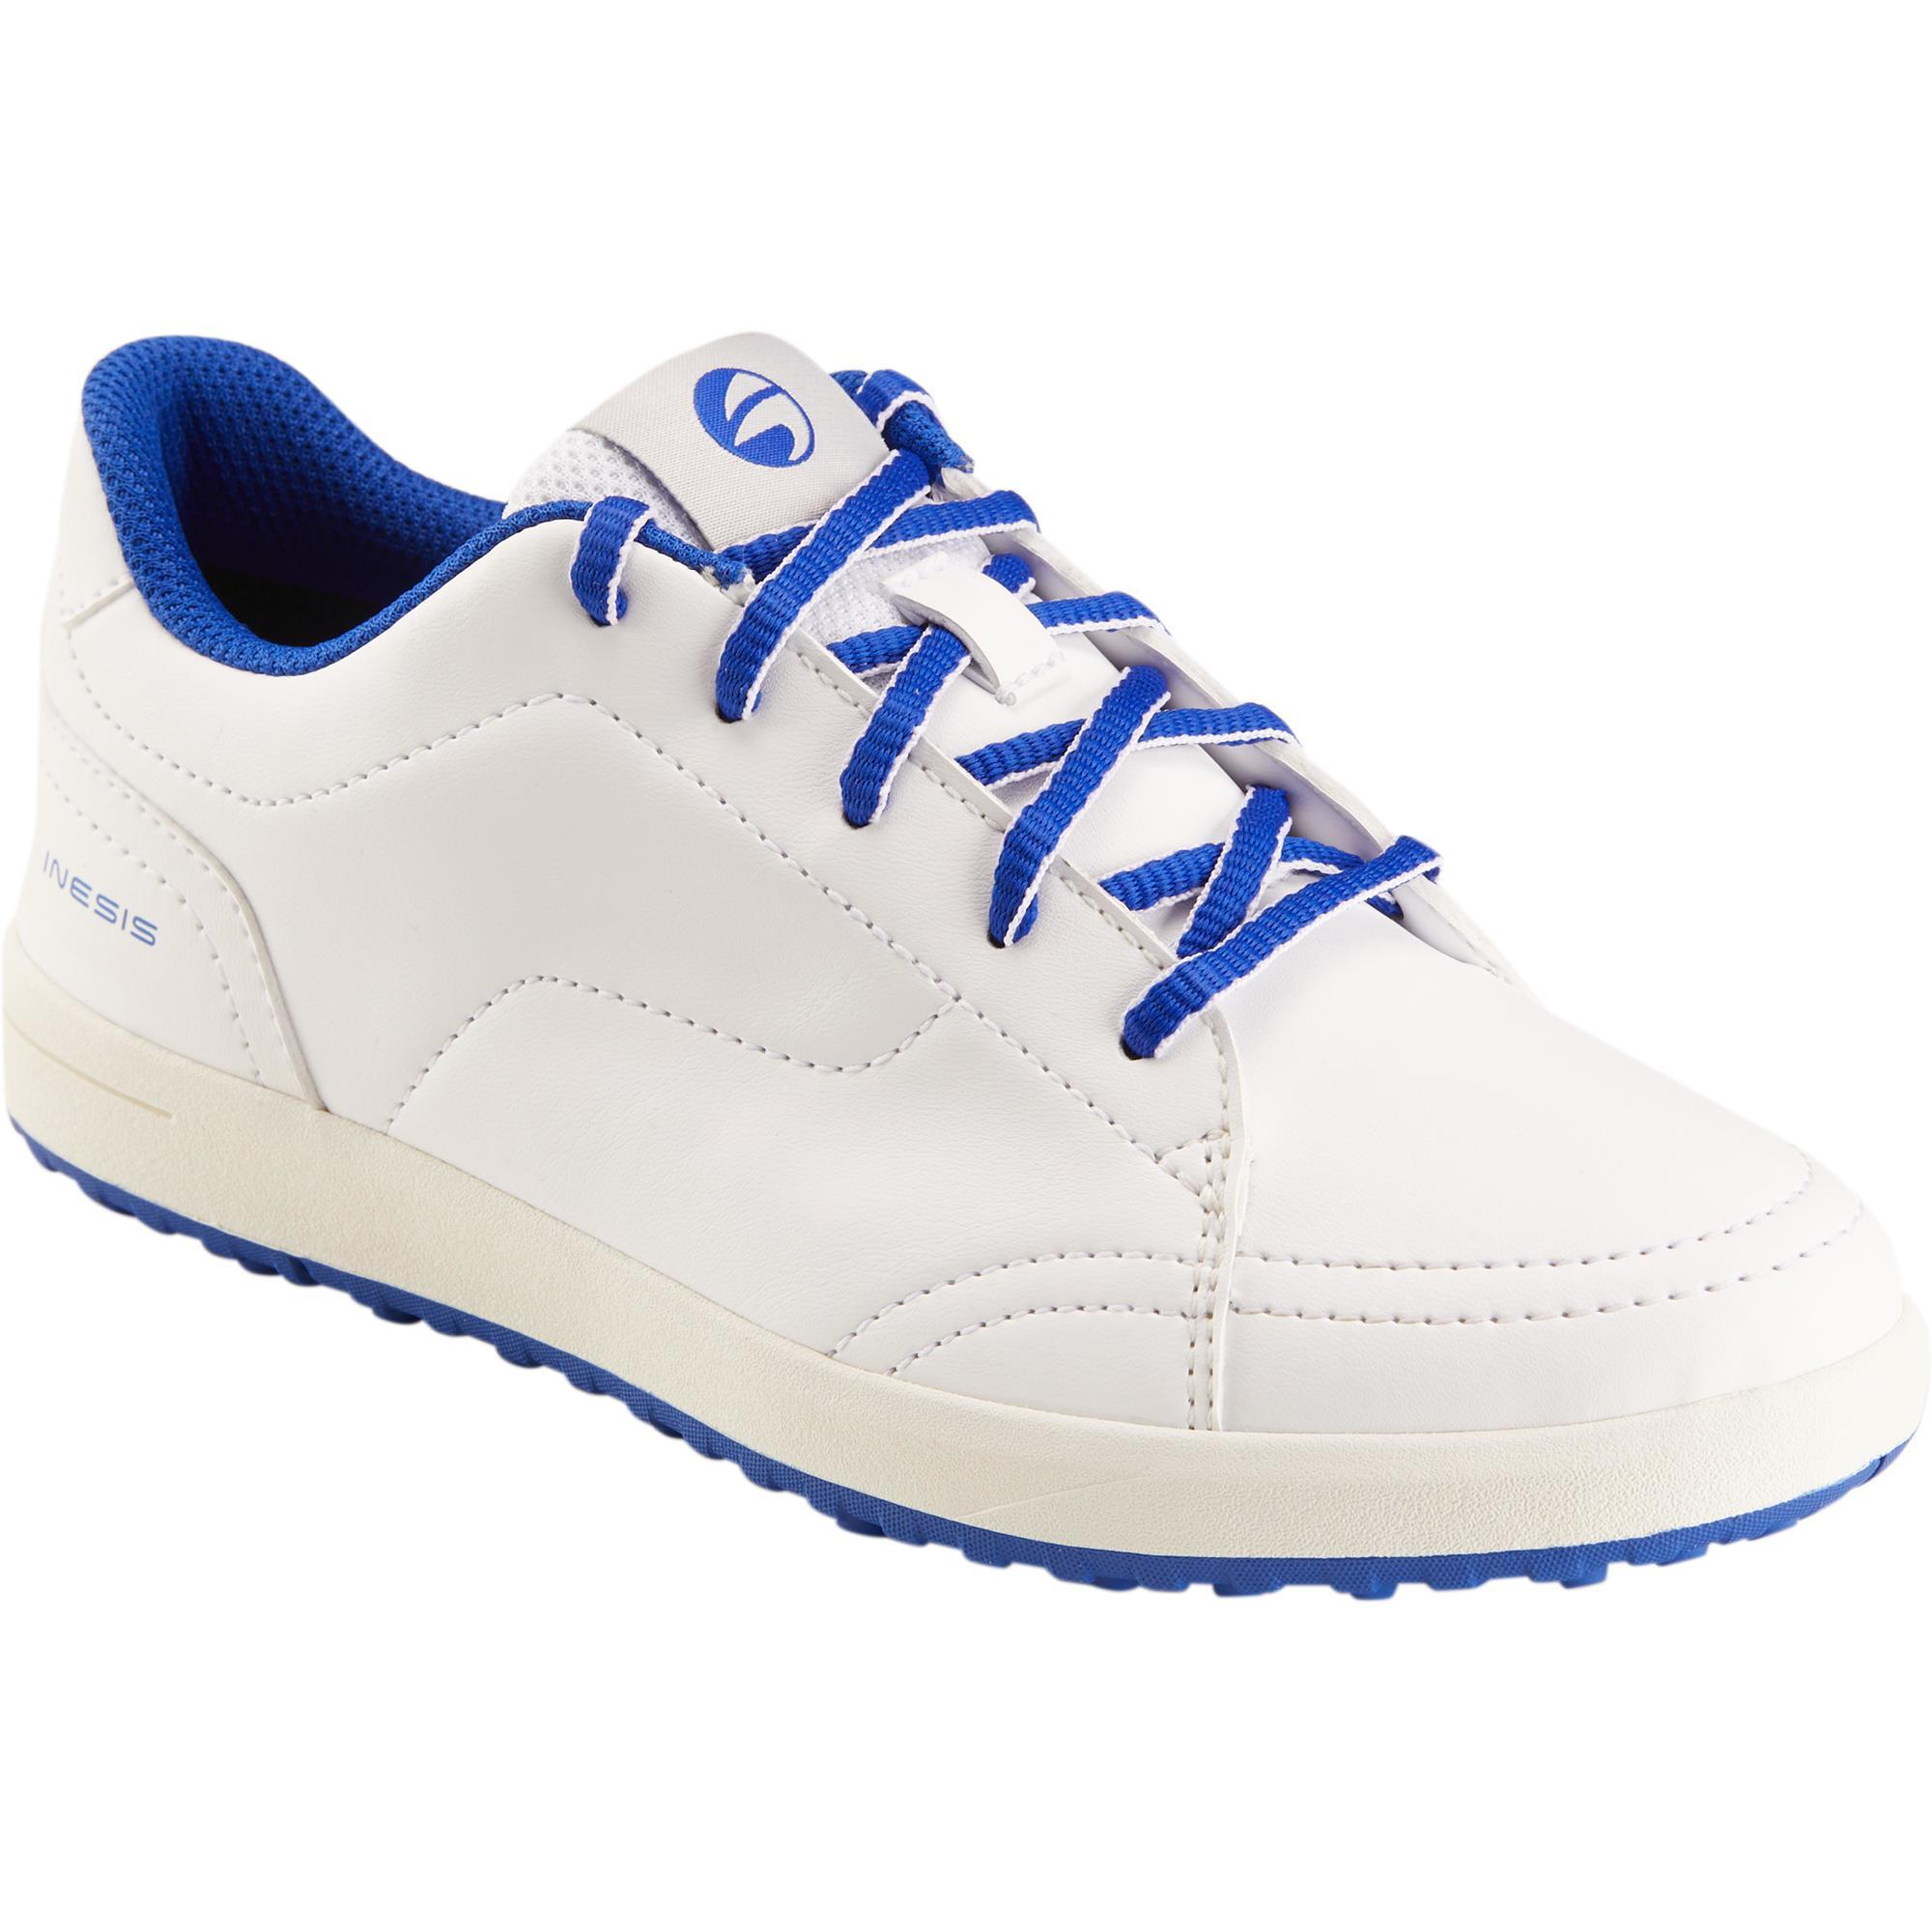 Inesis chaussures golf enfant blanches decathlon - Chaussure enfant decathlon ...